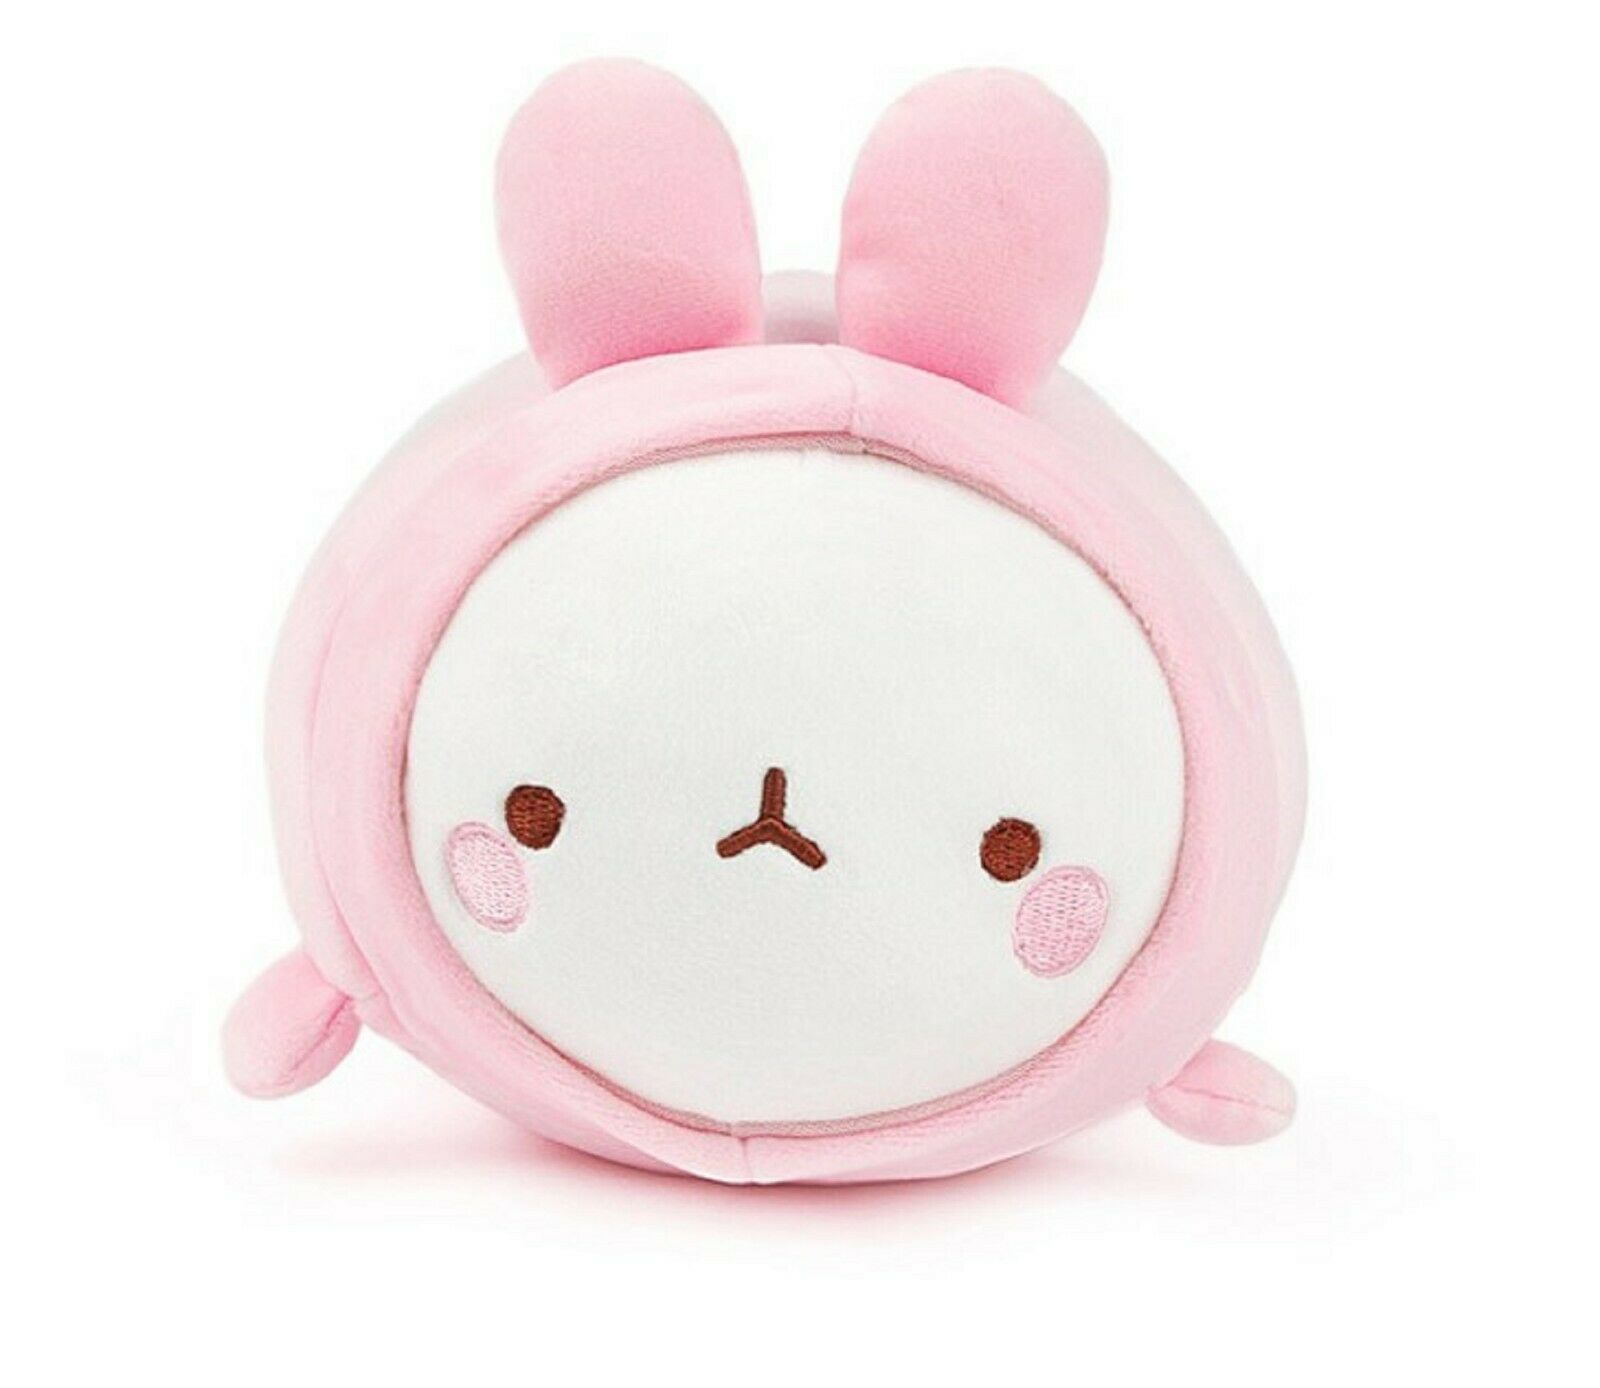 Molang Fluffy Soft Cushion Stuffed Animal Plush Pet Space Suit Rabbit Toy 9""